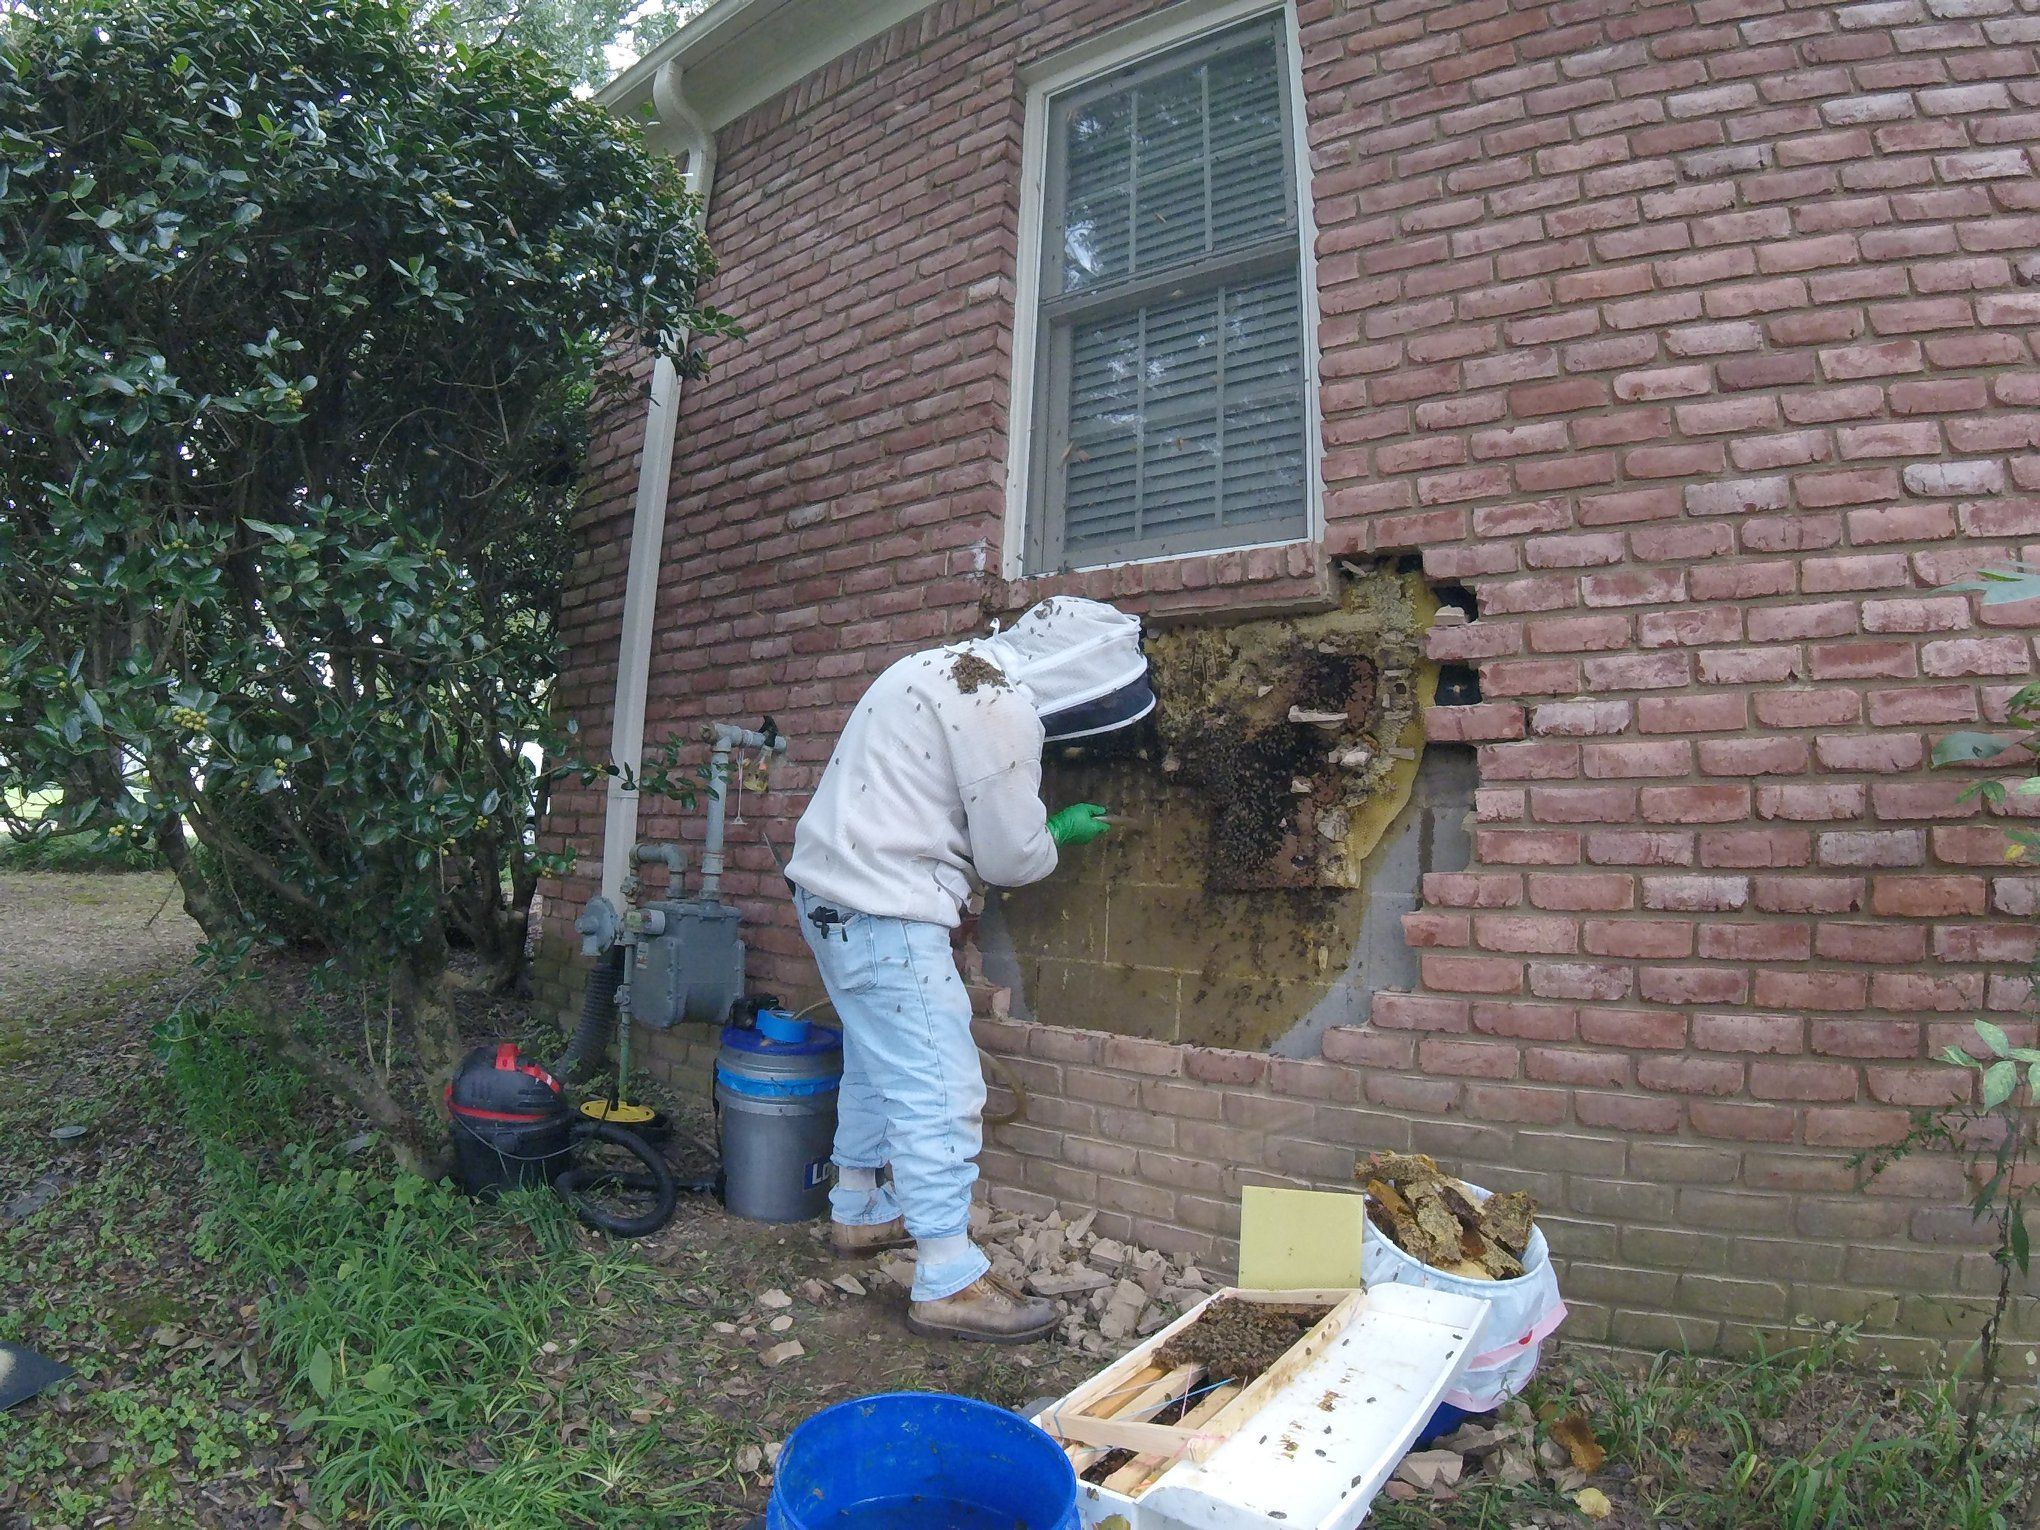 Bee keeper removing bees from brick wall